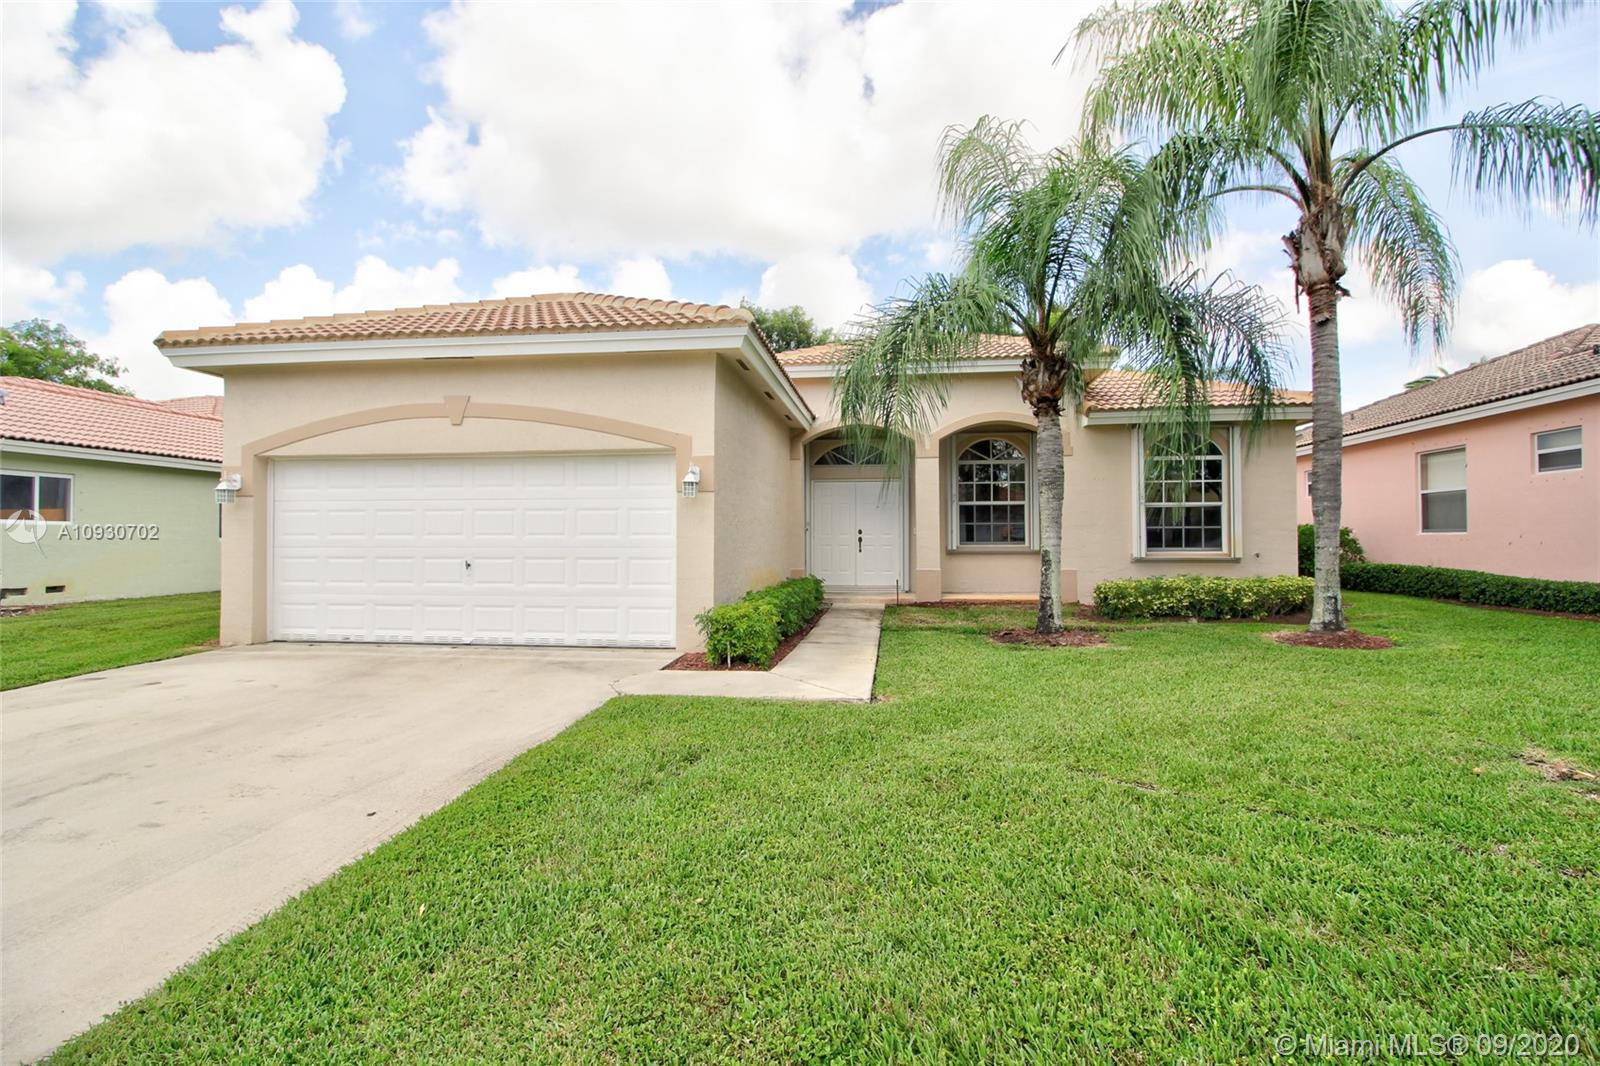 487 SE 23rd Dr Property Photo - Homestead, FL real estate listing